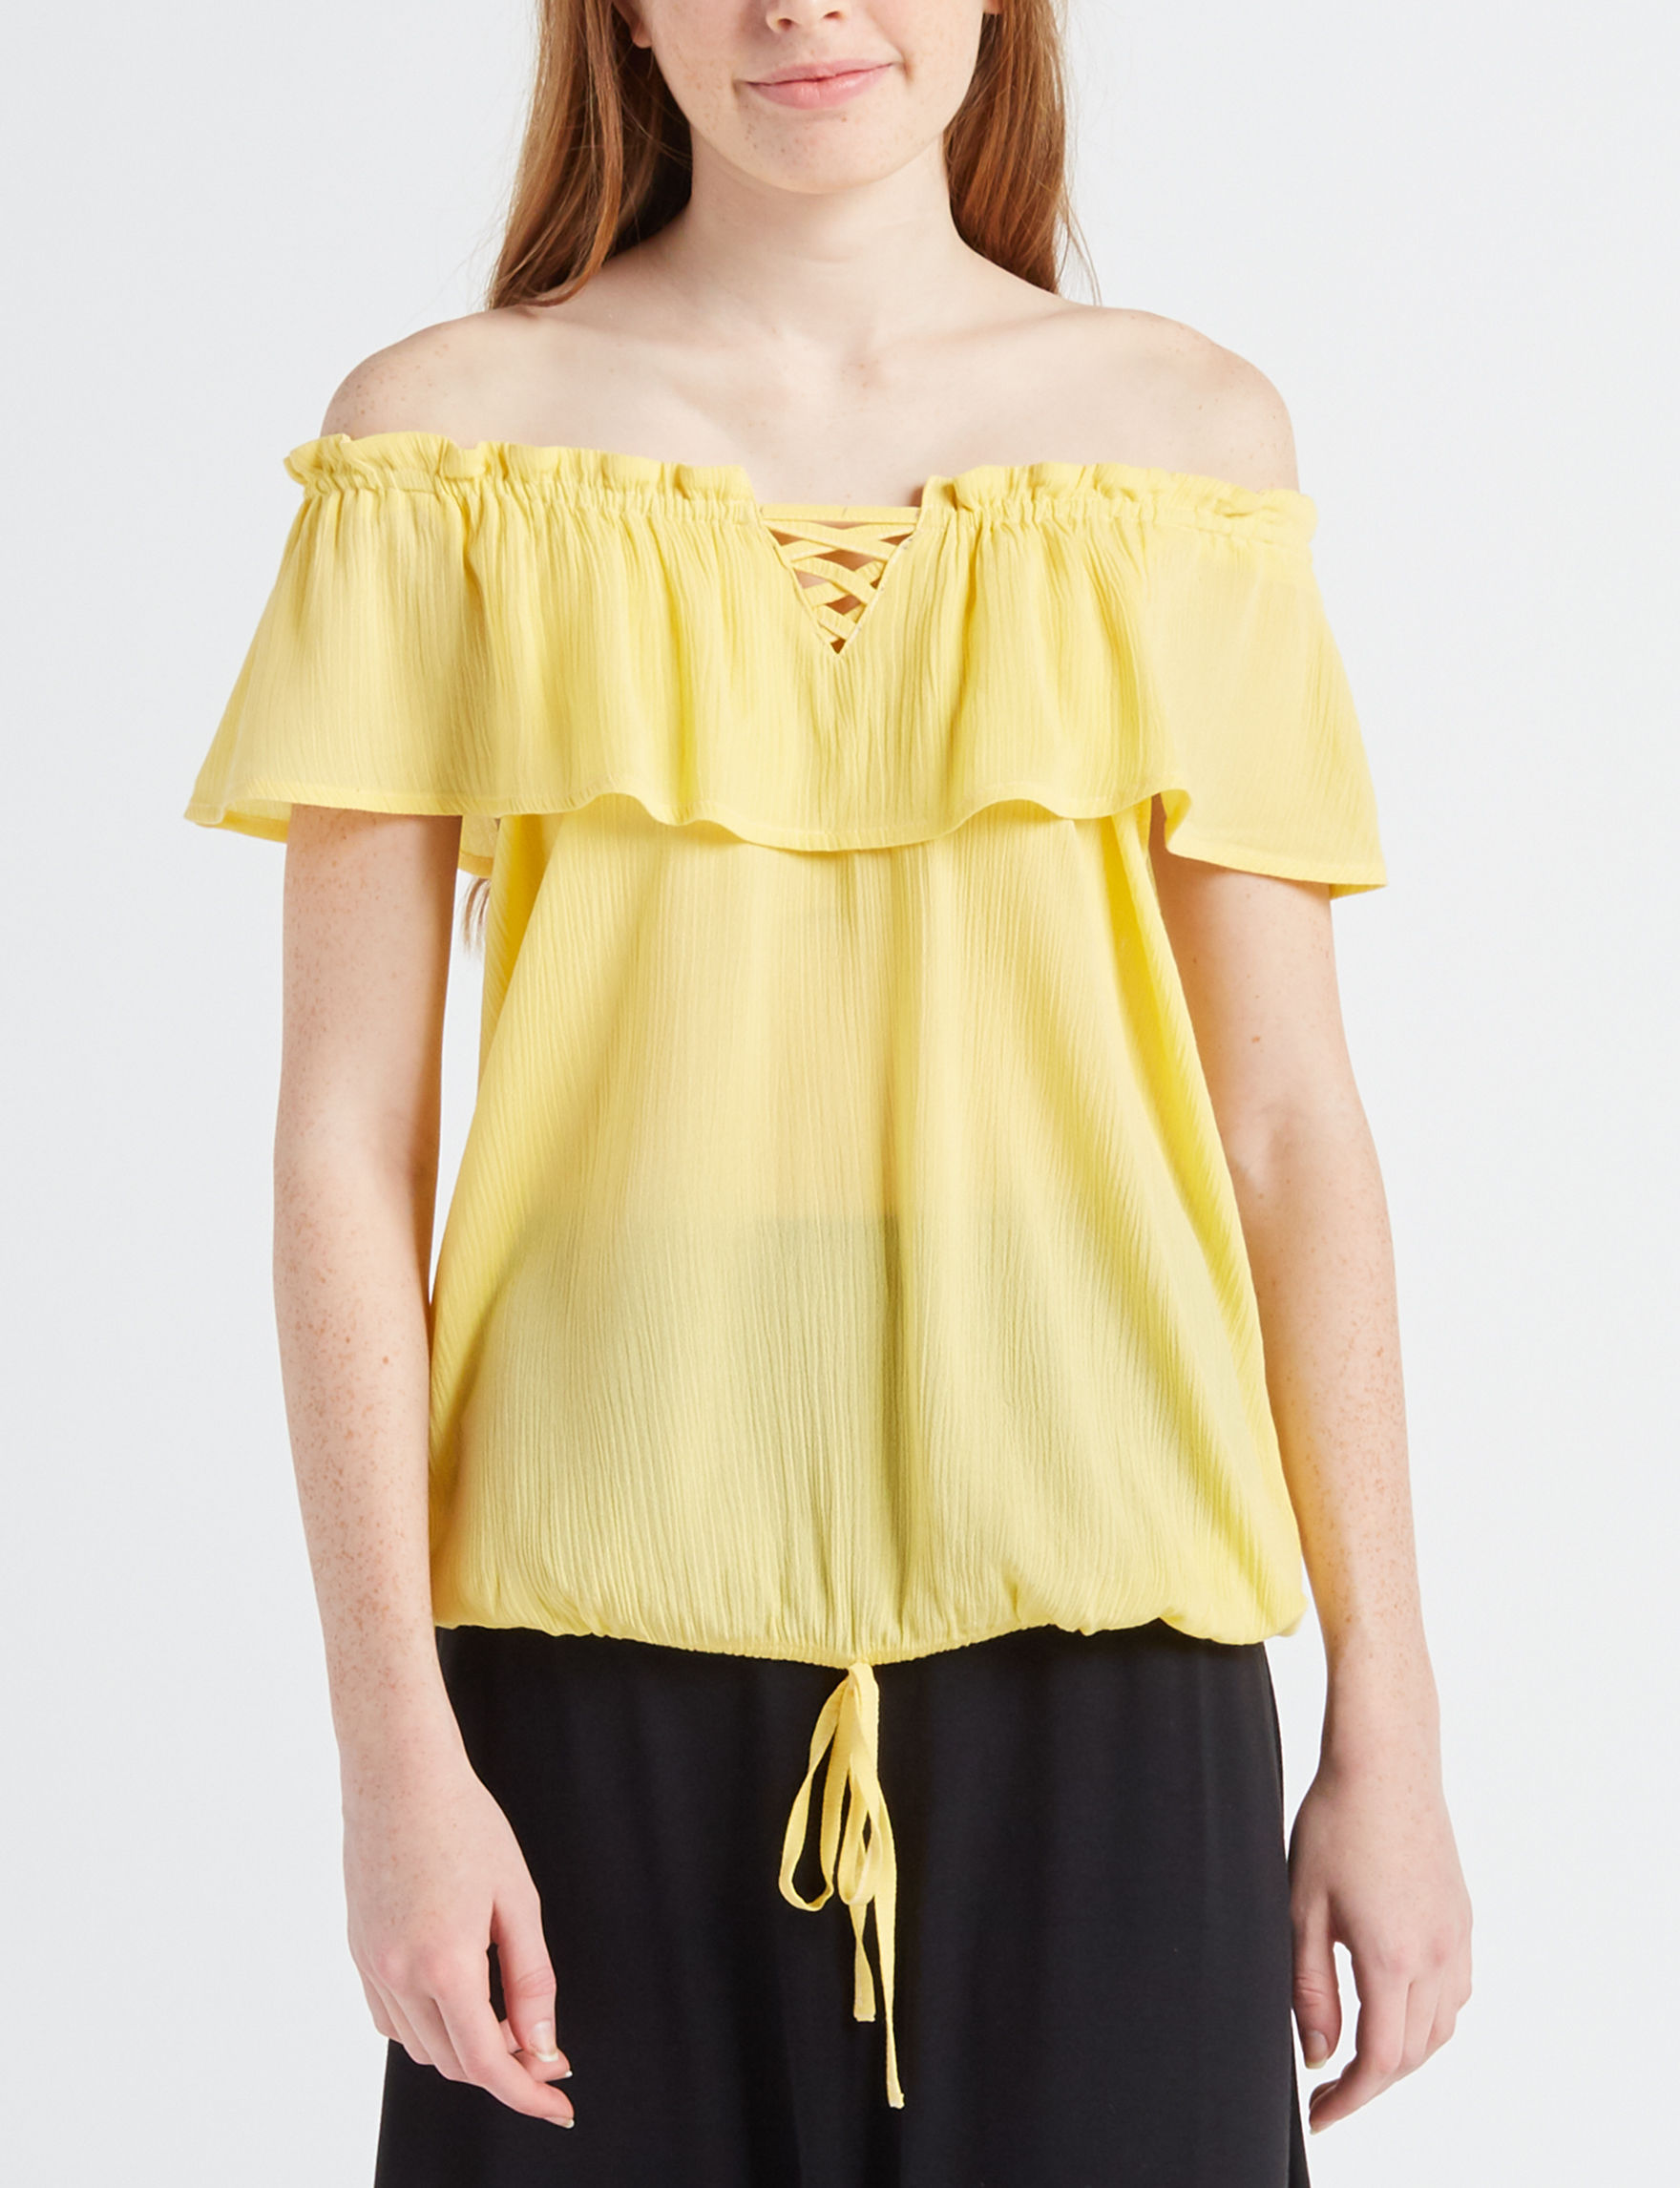 Moral Fiber Yellow Shirts & Blouses